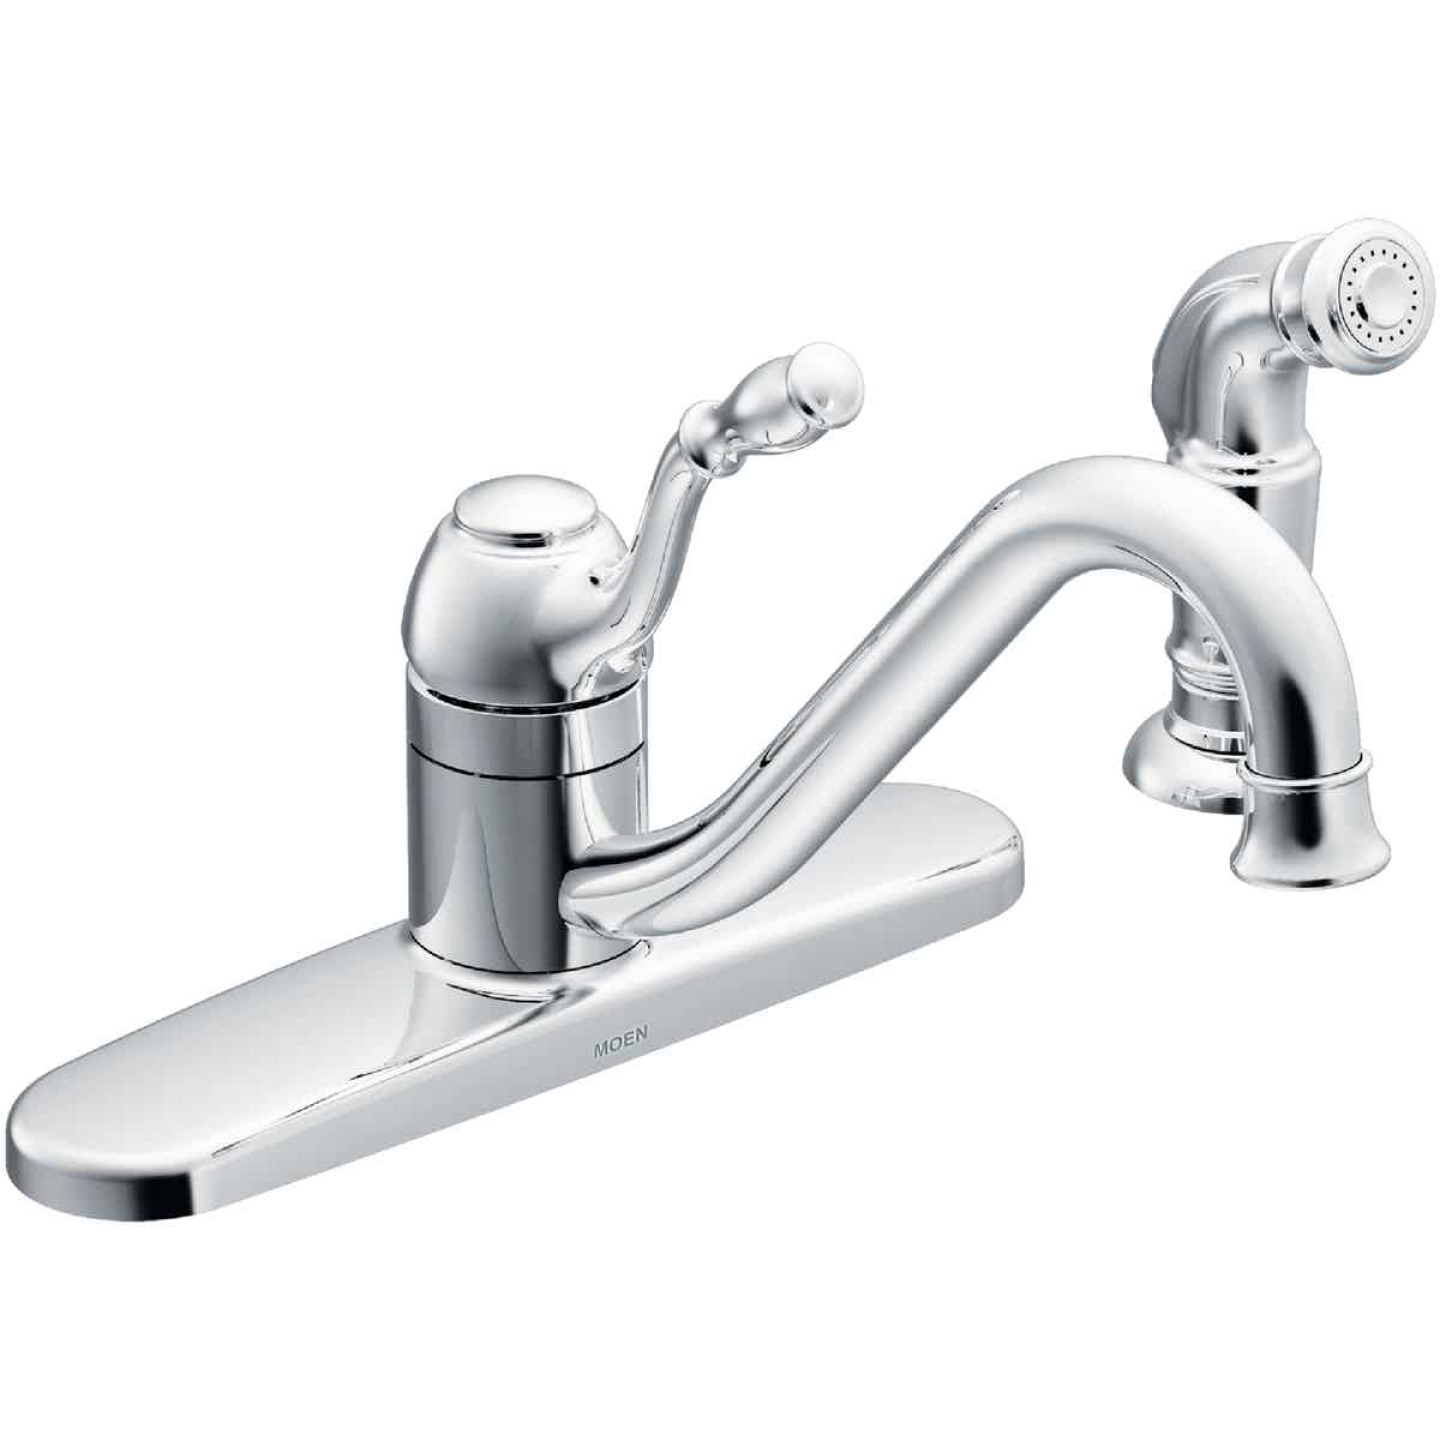 Moen Lindley Single Handle Lever Kitchen Faucet With Side Spray Chrome Niehaus Lumber